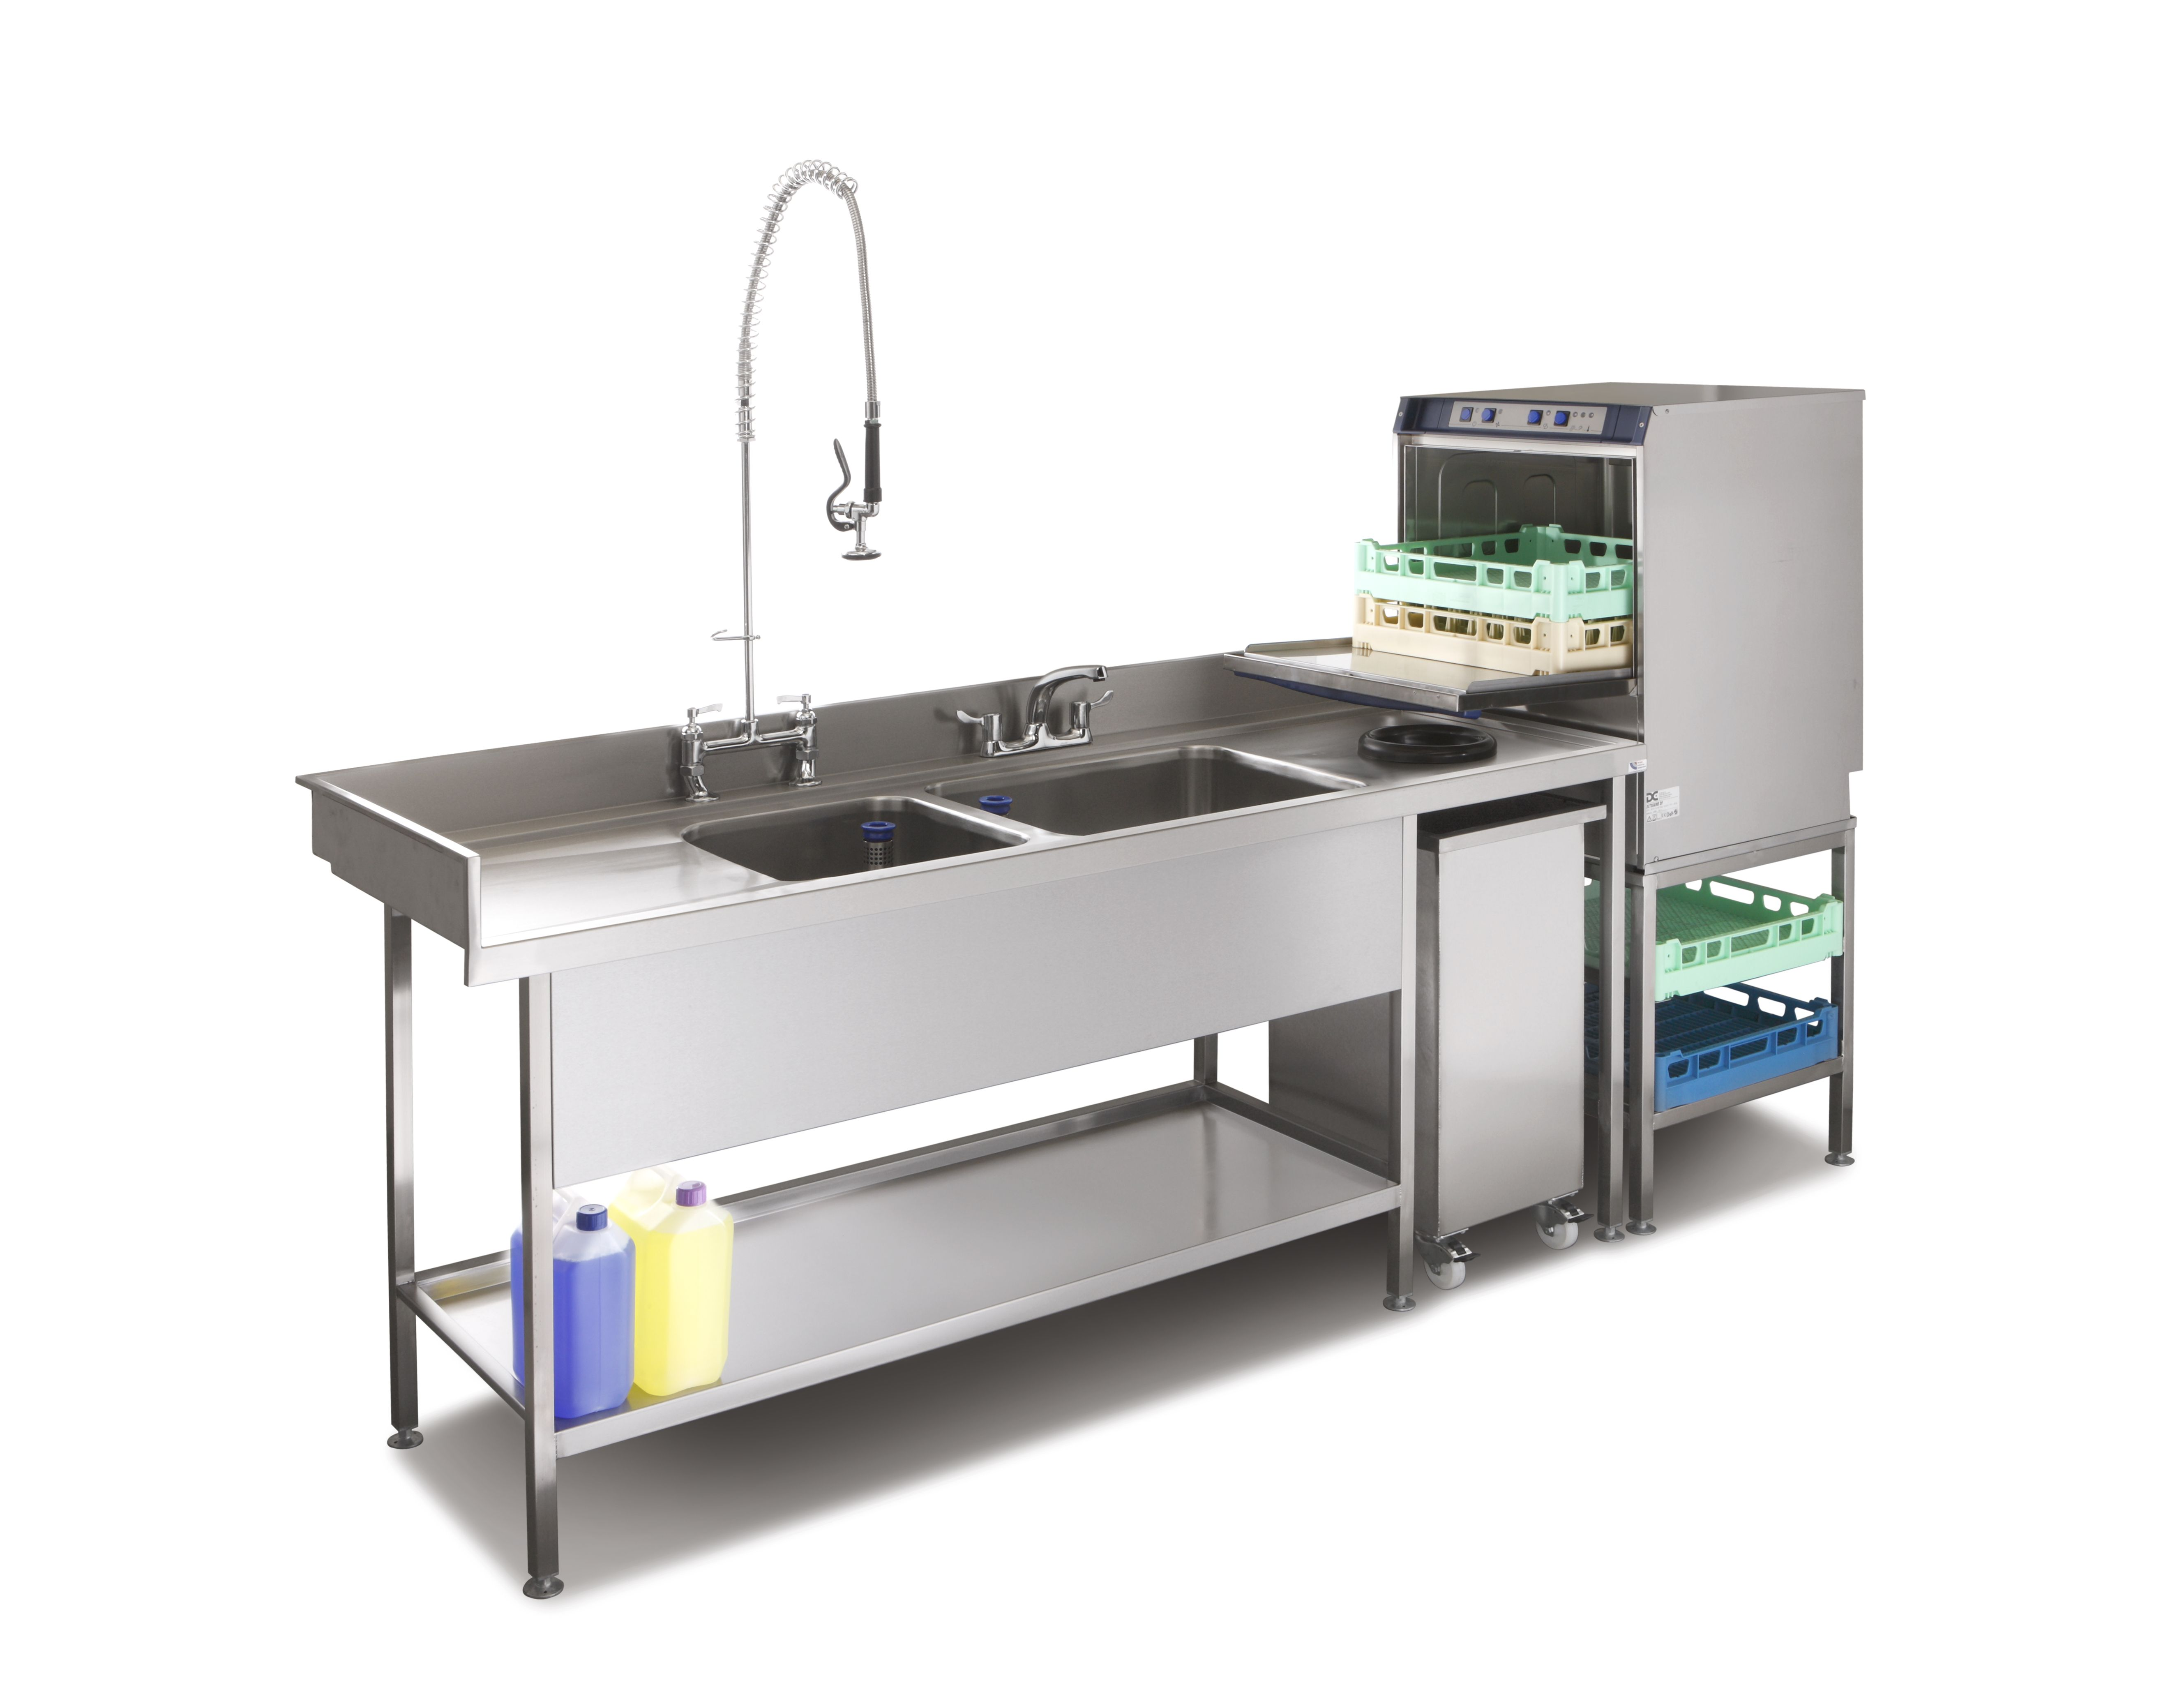 industrial kitchen supplies country style table pot wash sink and commercial dishwasher combination